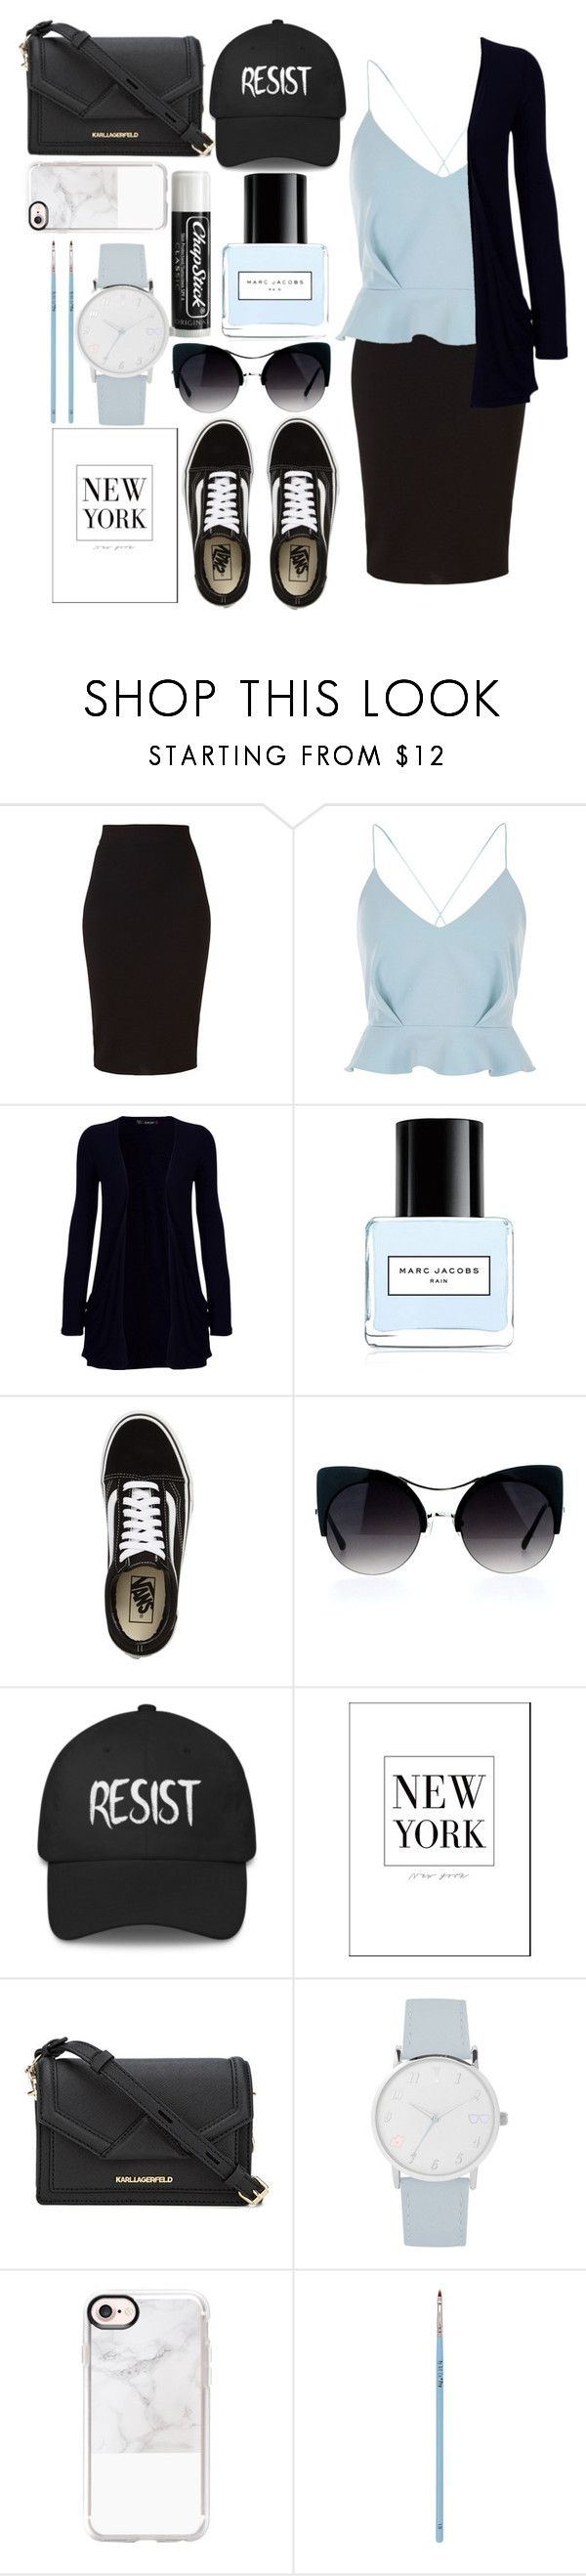 """""""Resist."""" by rhianna-alexandre on Polyvore featuring Winser London, River Island, WearAll, Marc Jacobs, Vans, Chapstick, A.X.N.Y., Casetify and My Kit Co."""